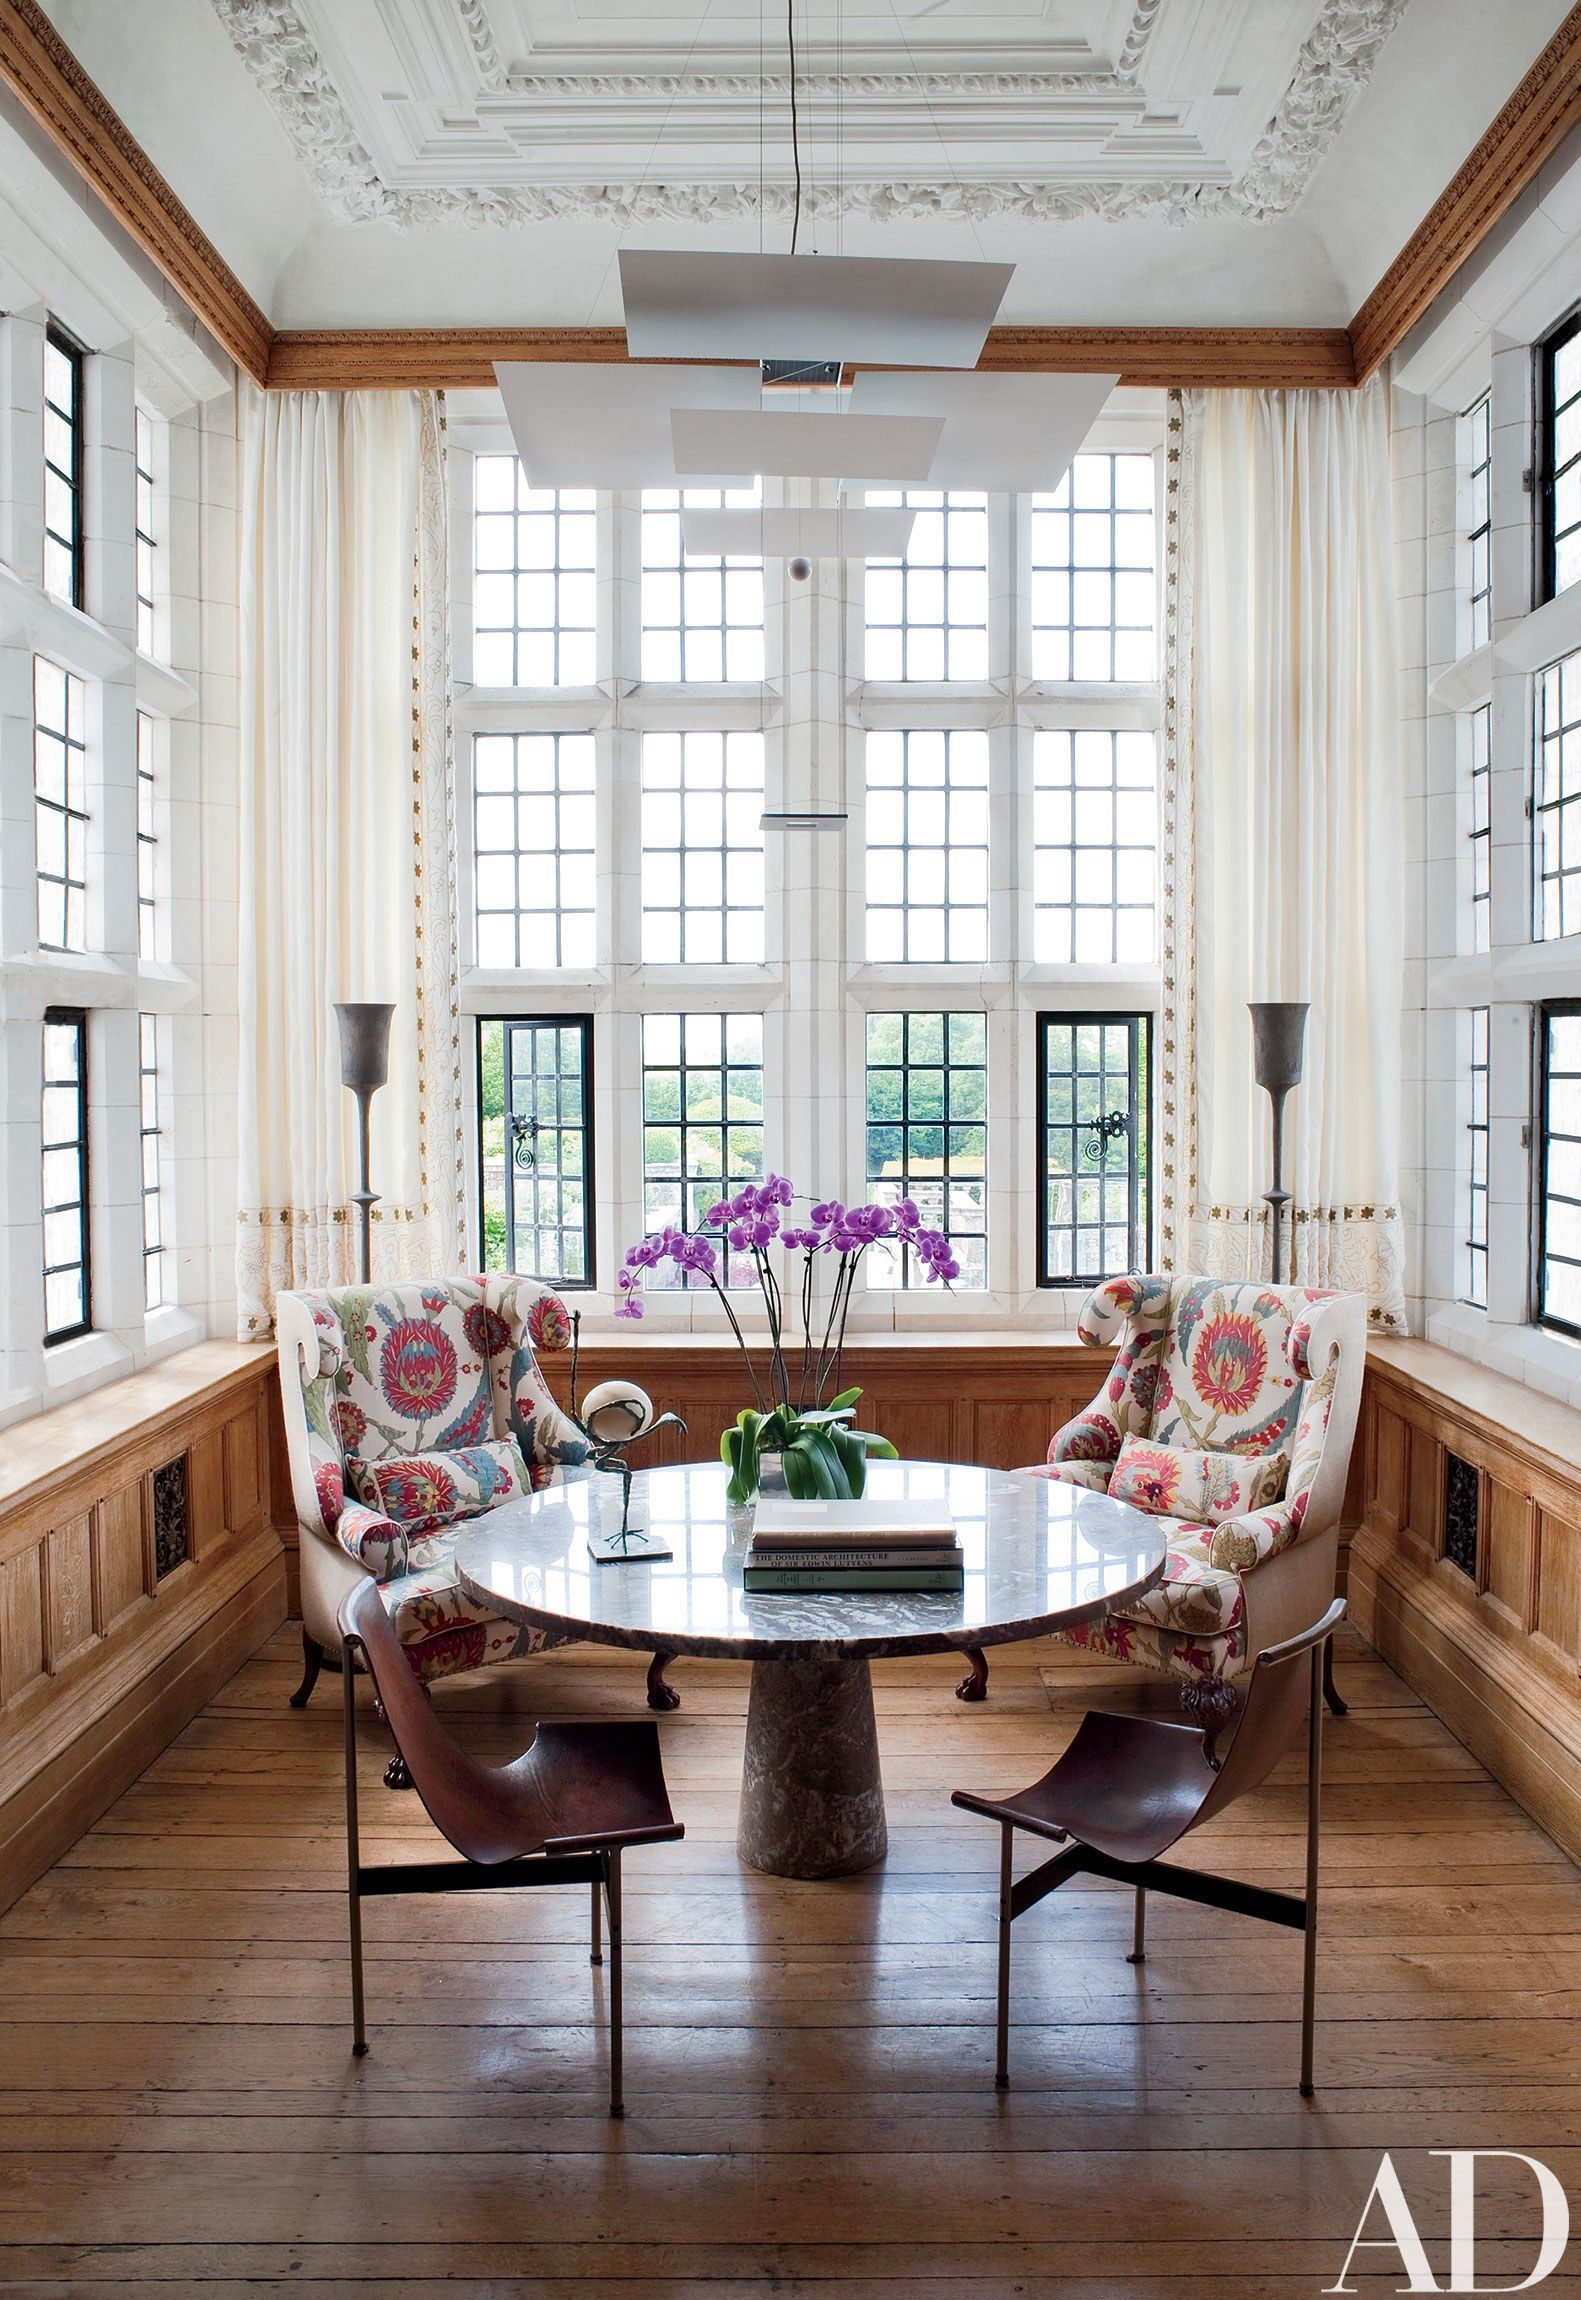 Look Inside an English Country Home That Elegantly Blends Tudor and ...